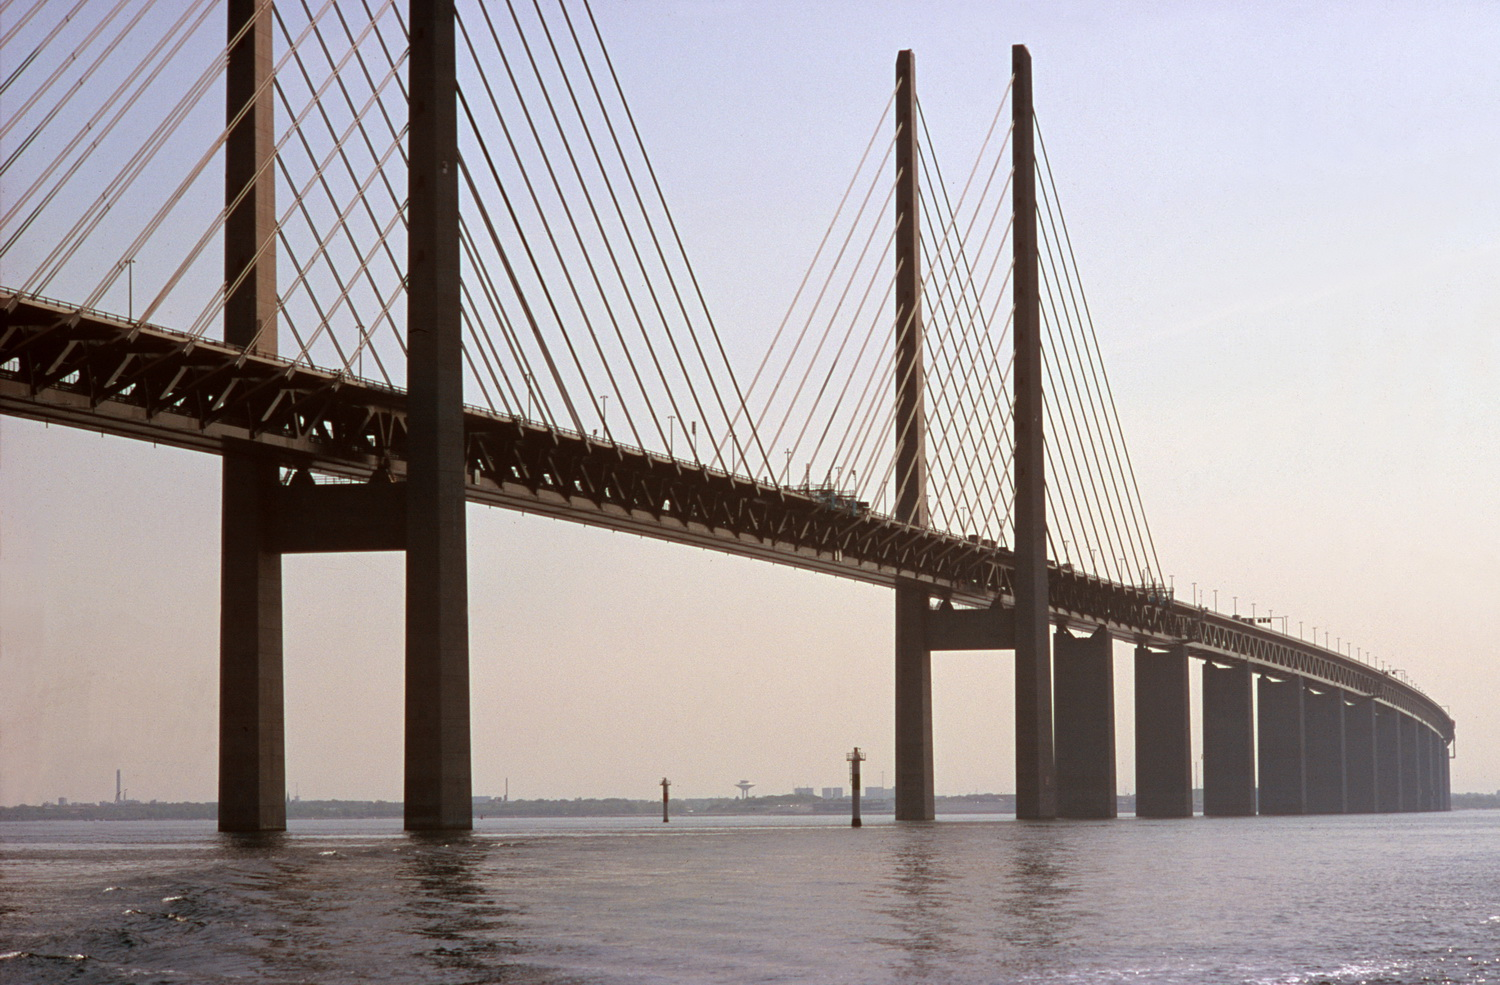 Epic Project Management: The Øresund Bridge: Episode 26